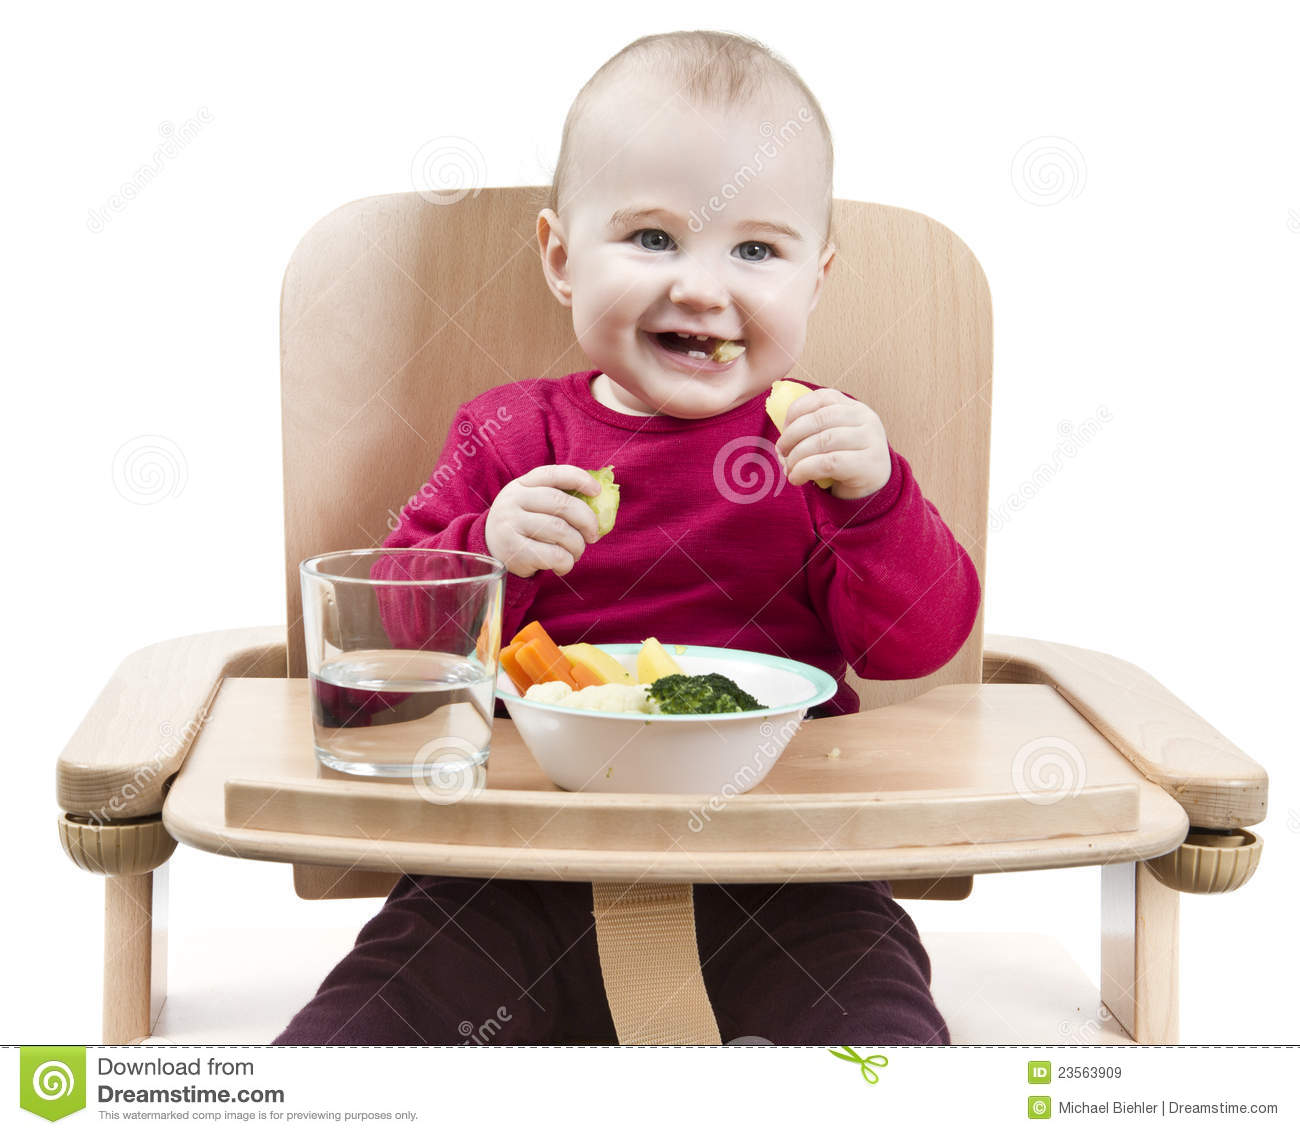 Baby Chair For Eating Young Child Eating In High Chair Royalty Free Stock Images